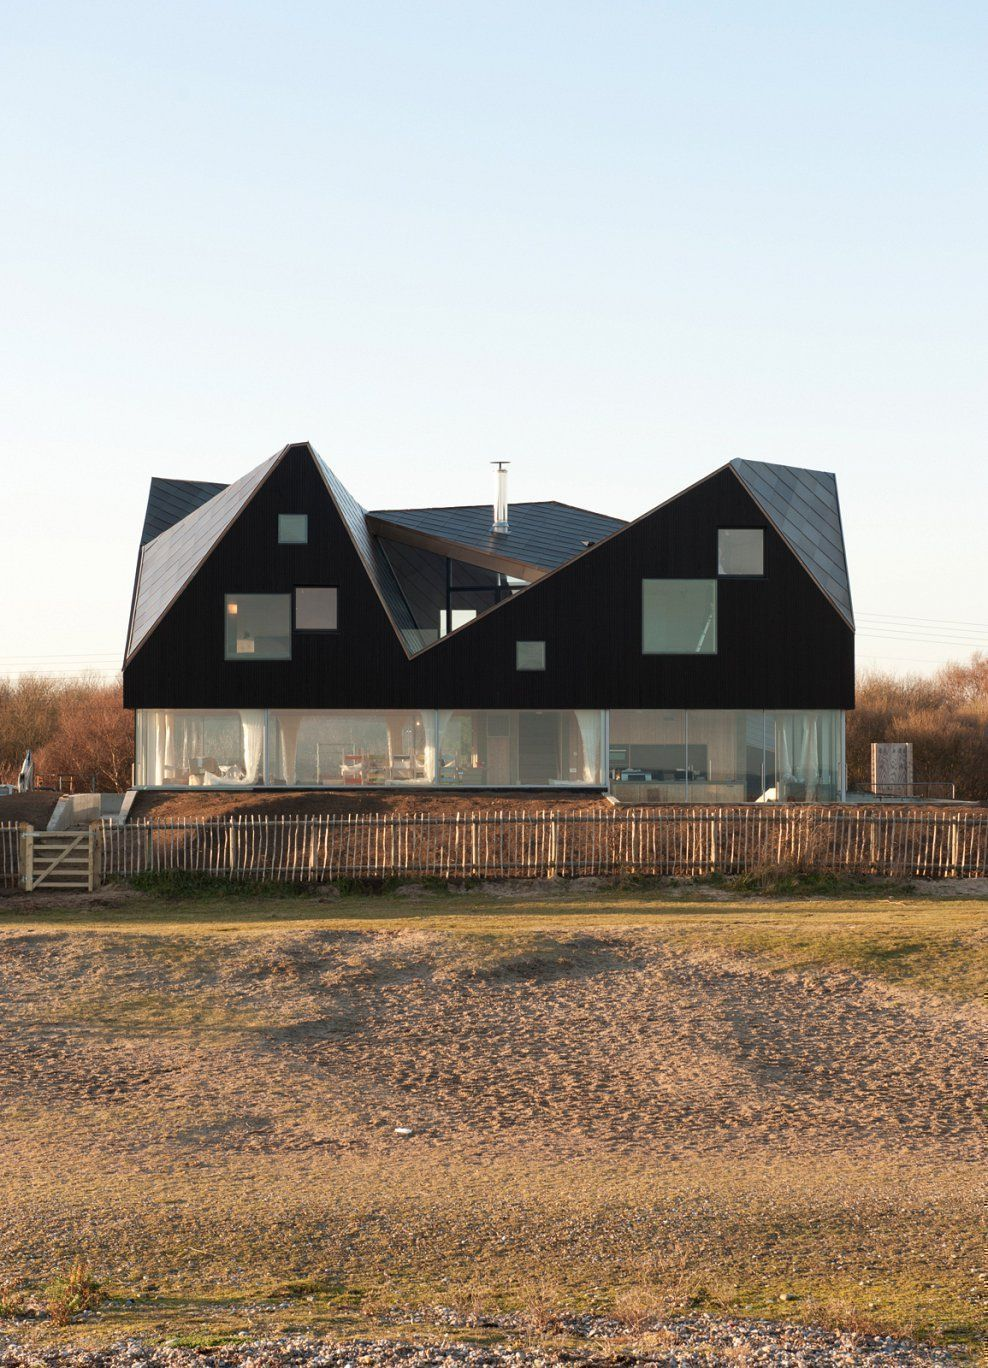 Geometric art structure glass house - The Dune House in Thorpeness, England